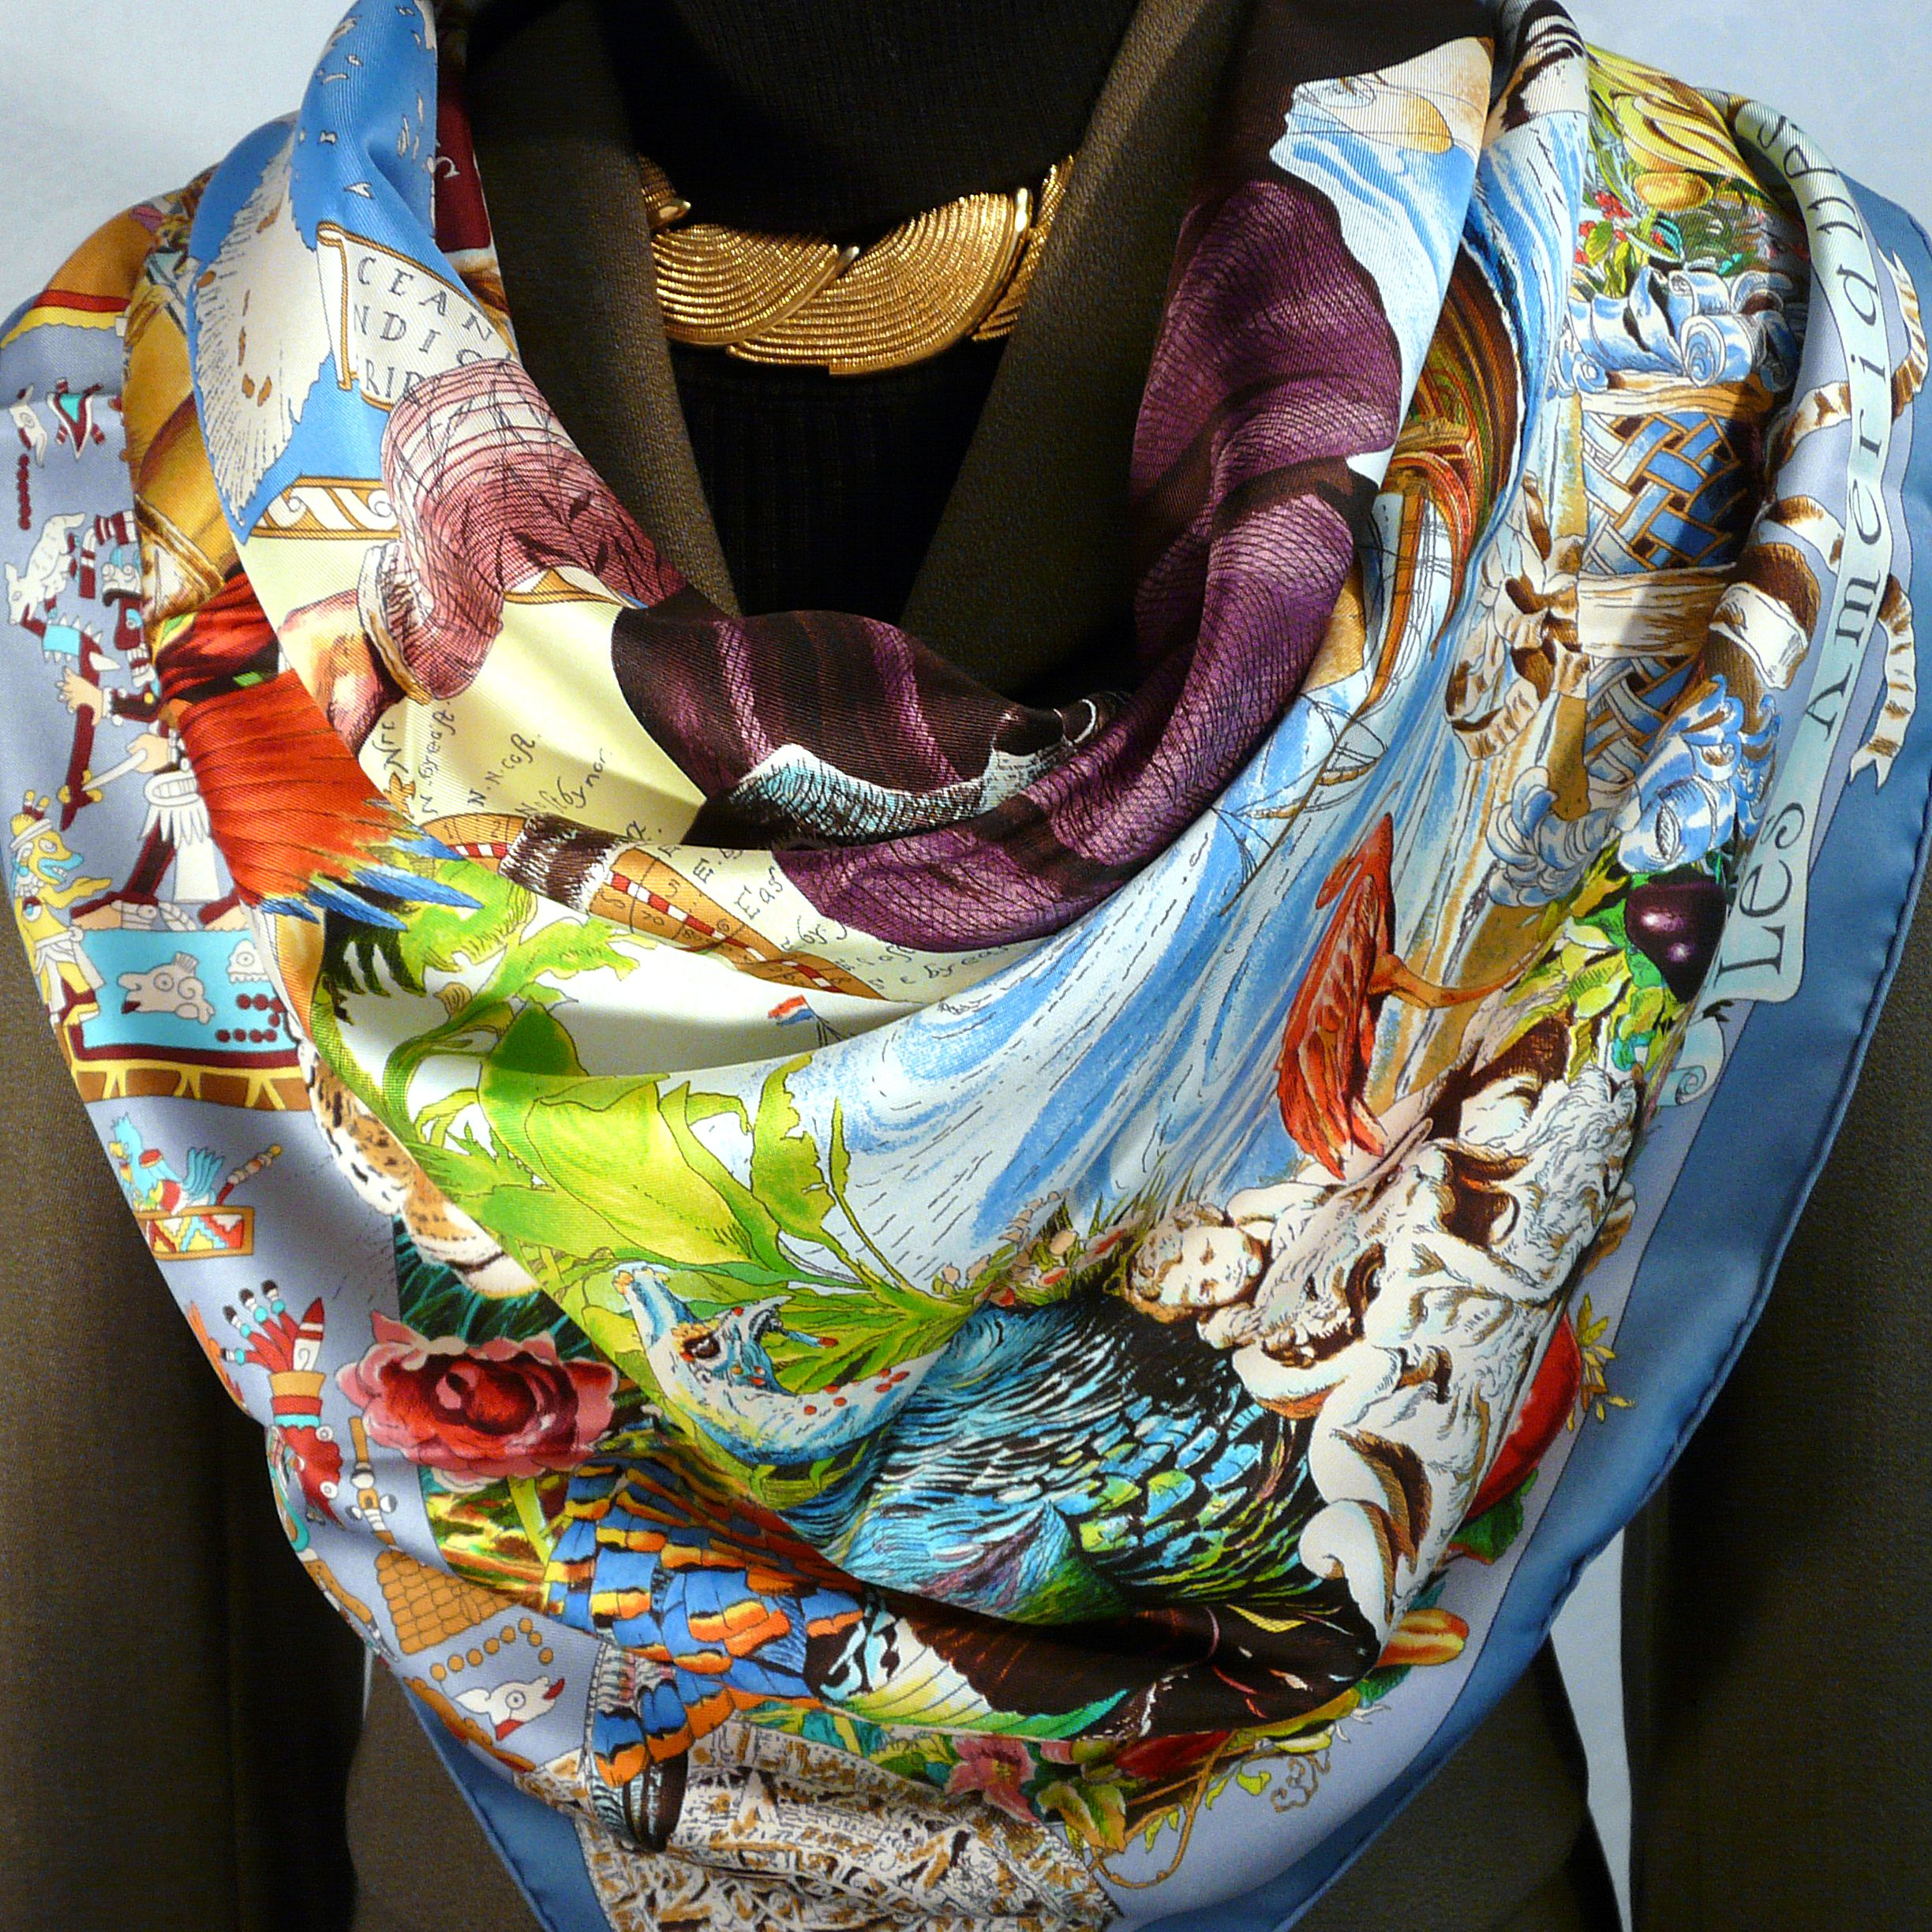 Les Ameriques HERMES Silk Scarf with Hermes Riding Jacket